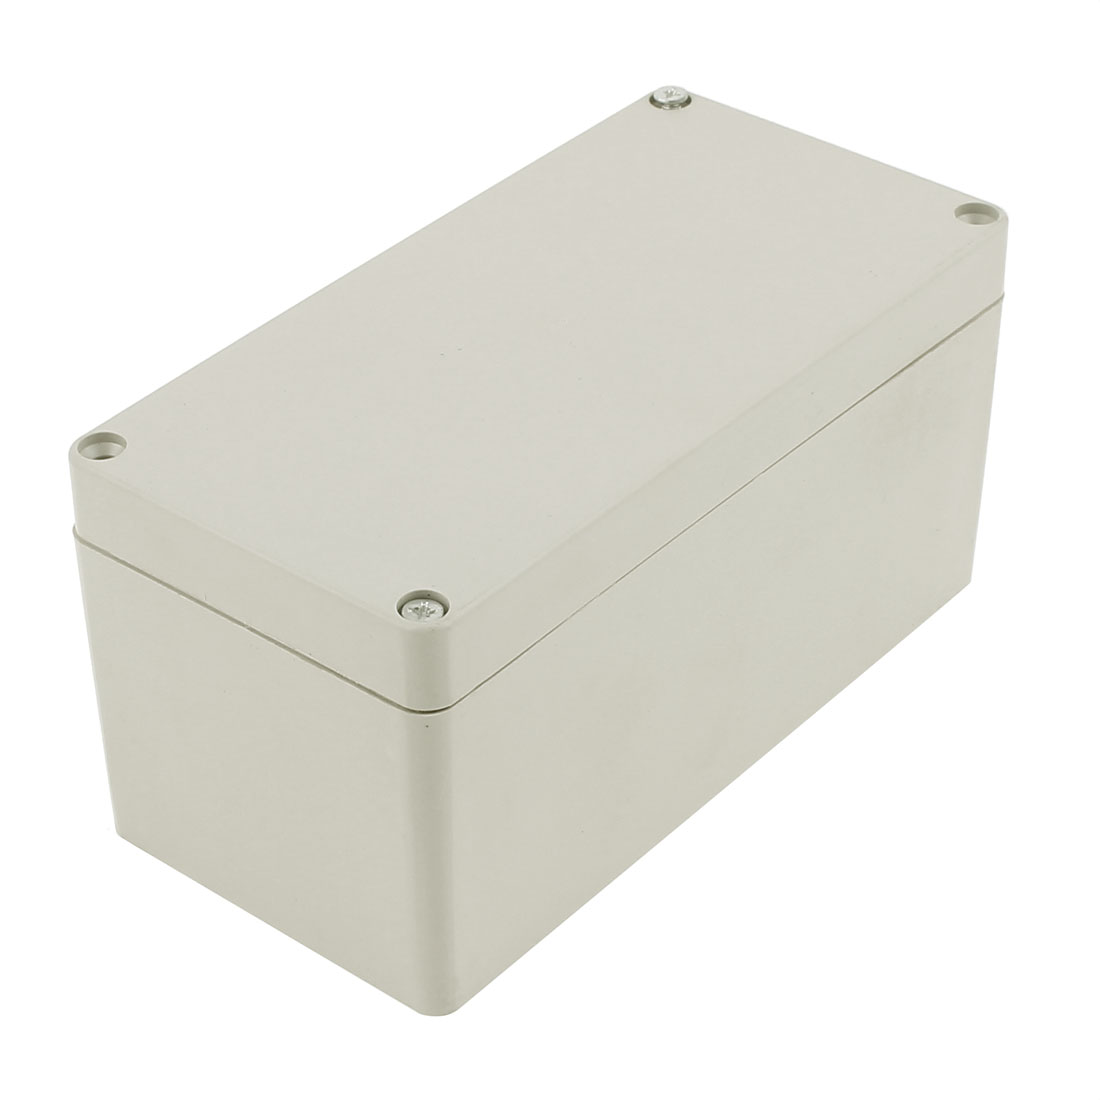 160 x 80 x 80mm Dustproof IP65 Junction Box Terminal Connecting Box Enclosure